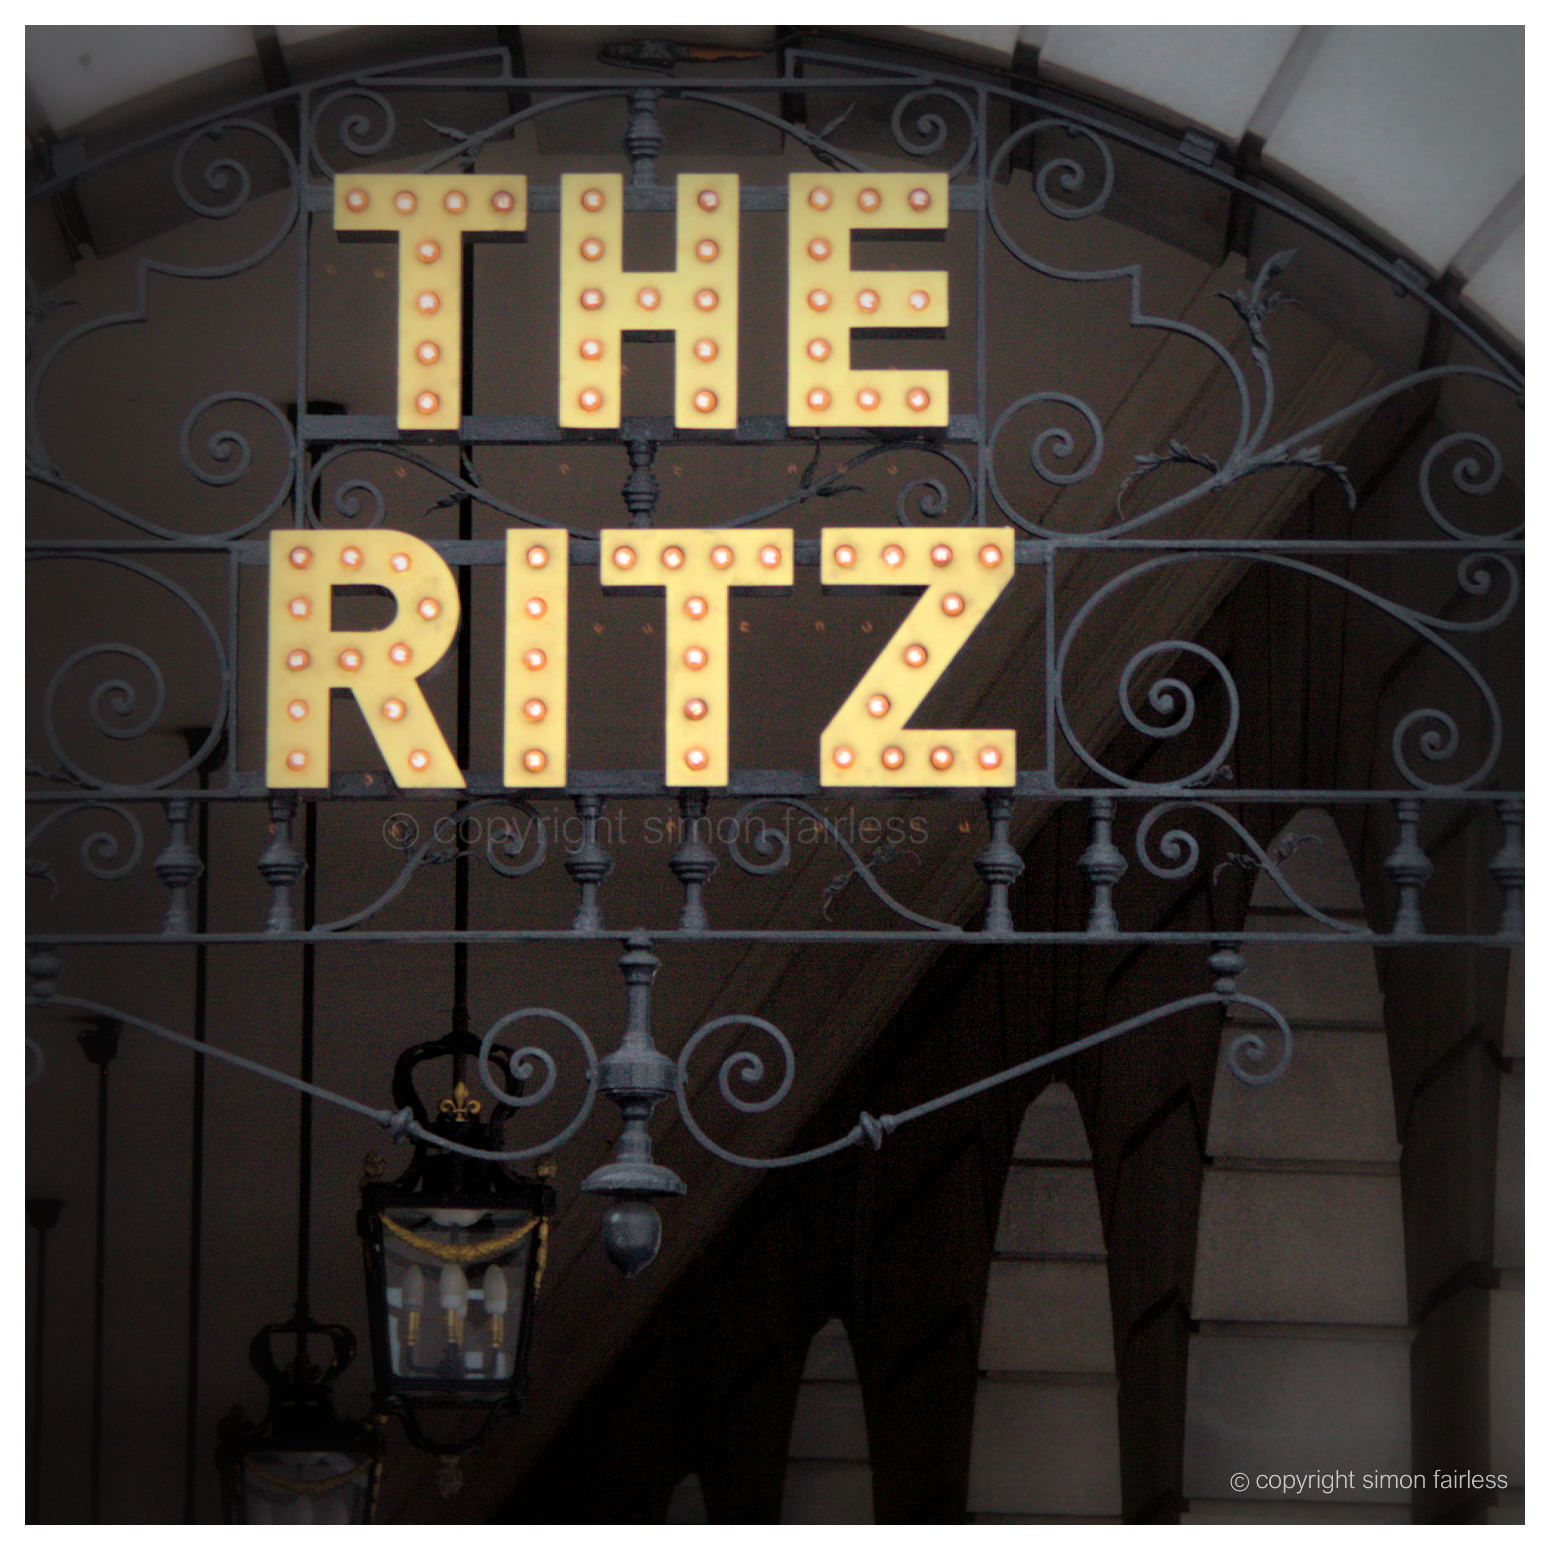 The Ritz image